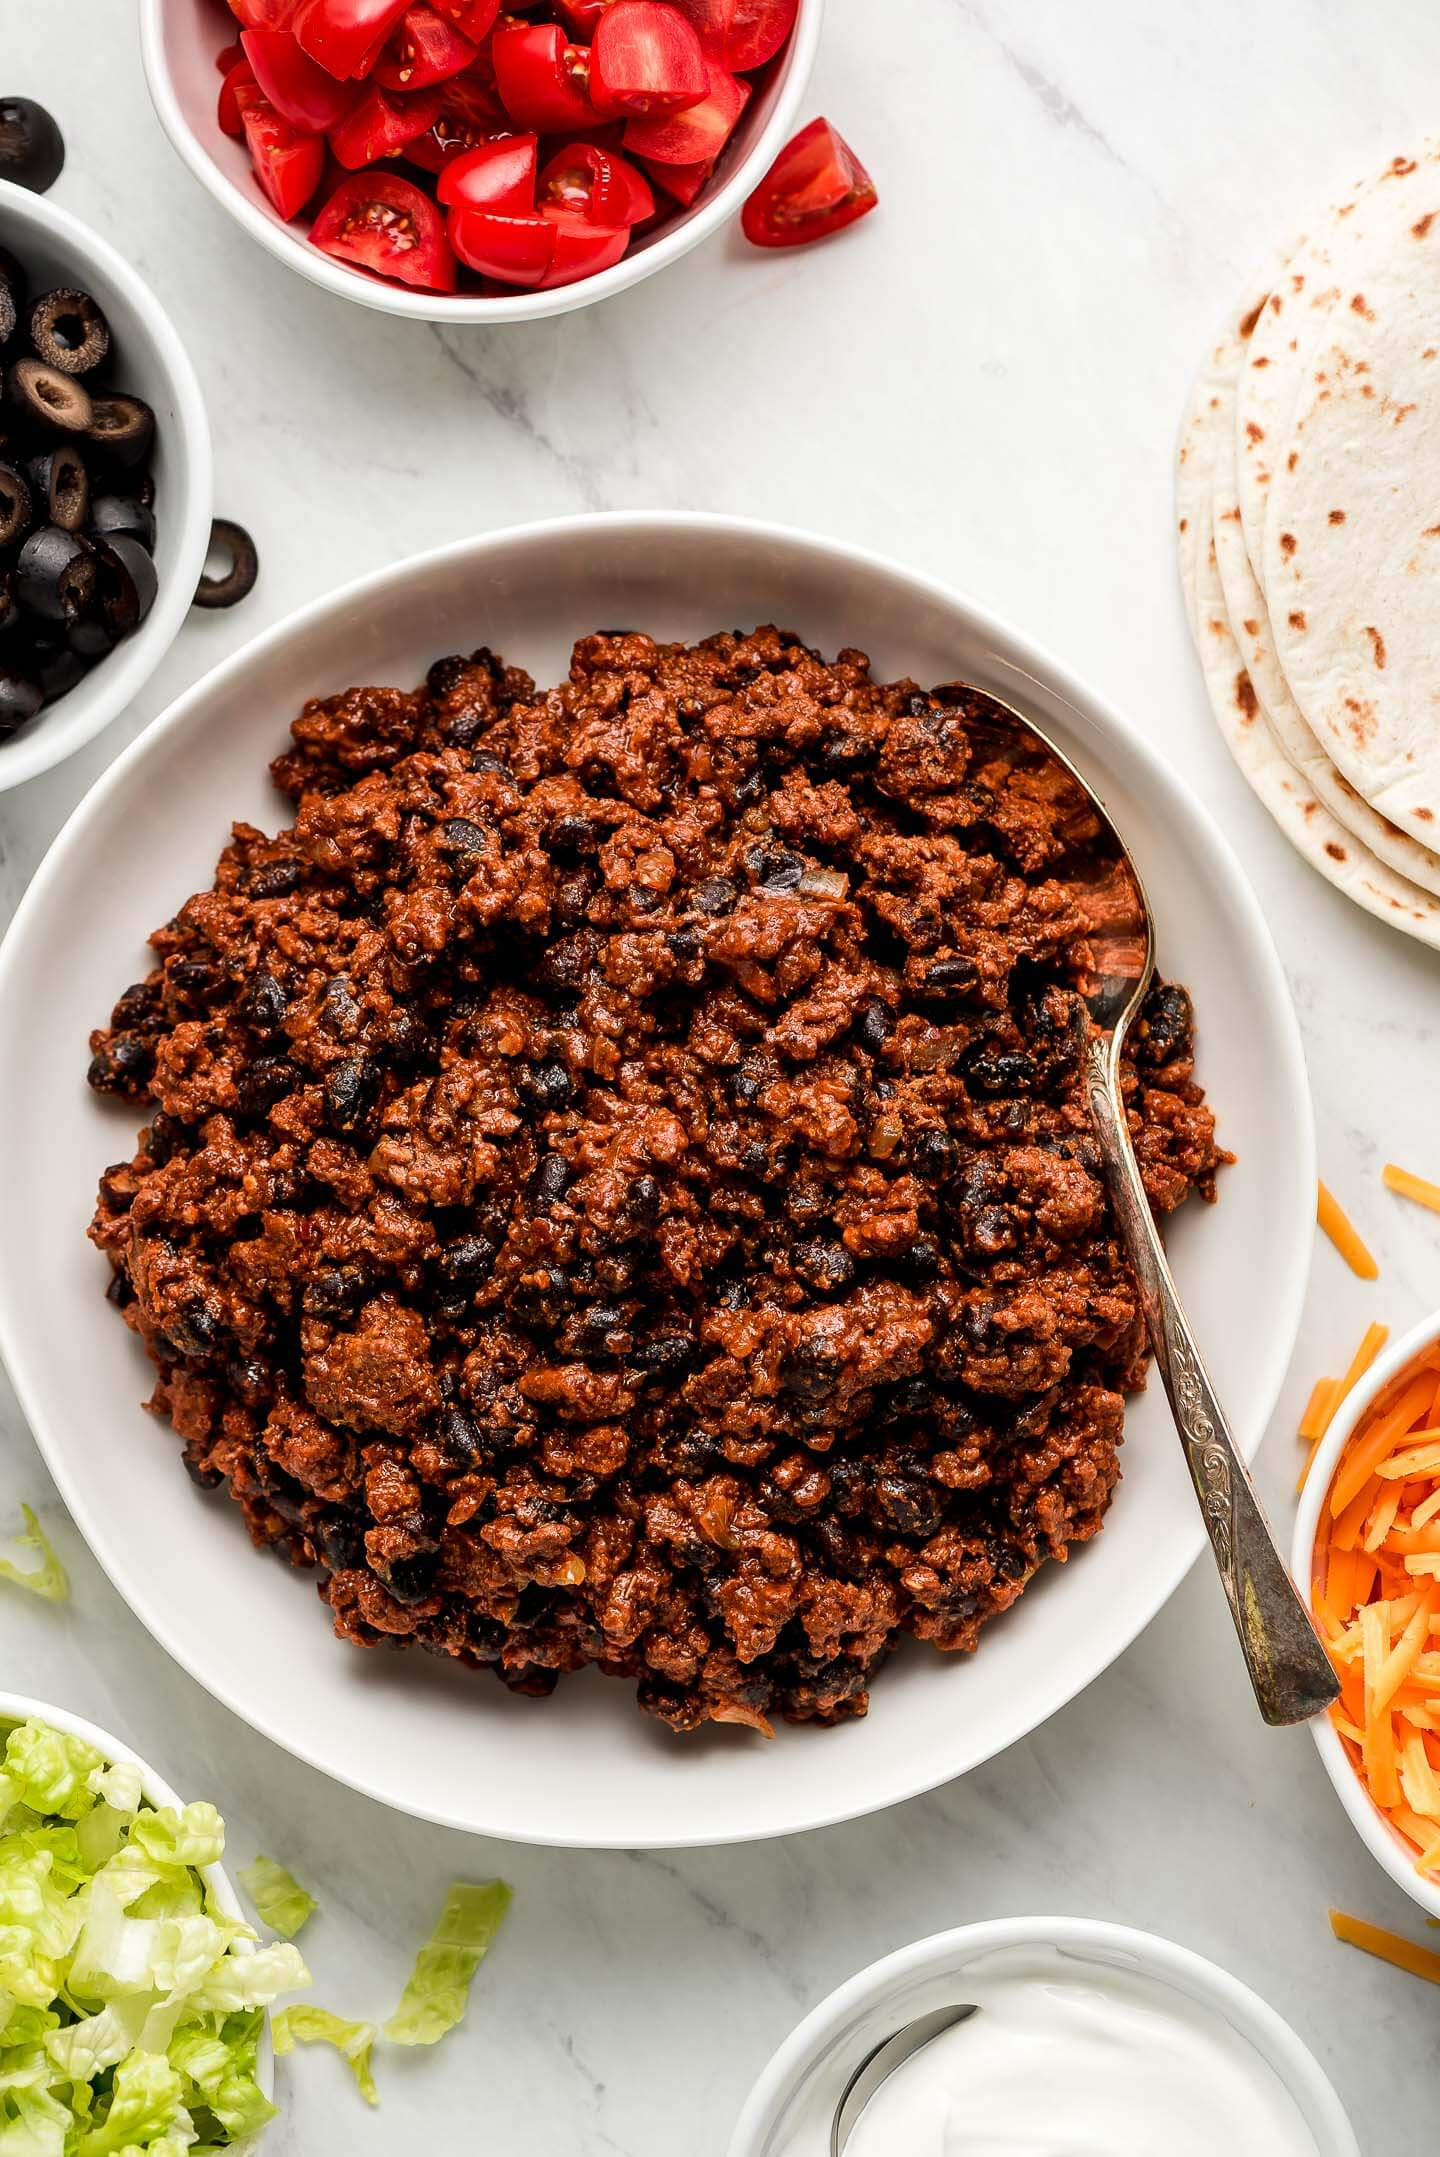 Ground Beef Taco Meat with beans in a white serving bowl with bowls of condiments to the sides.